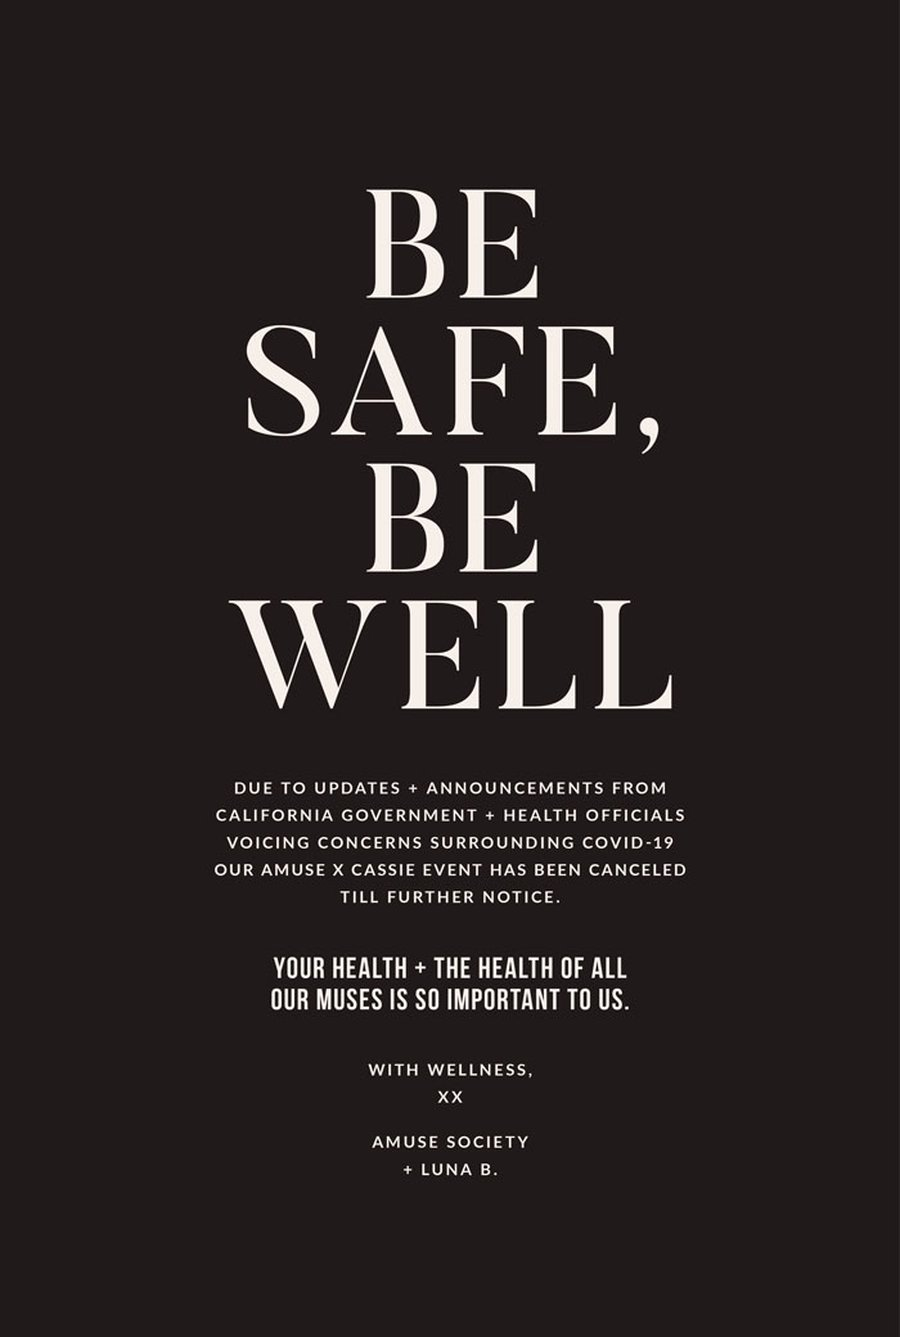 Be safe, be well